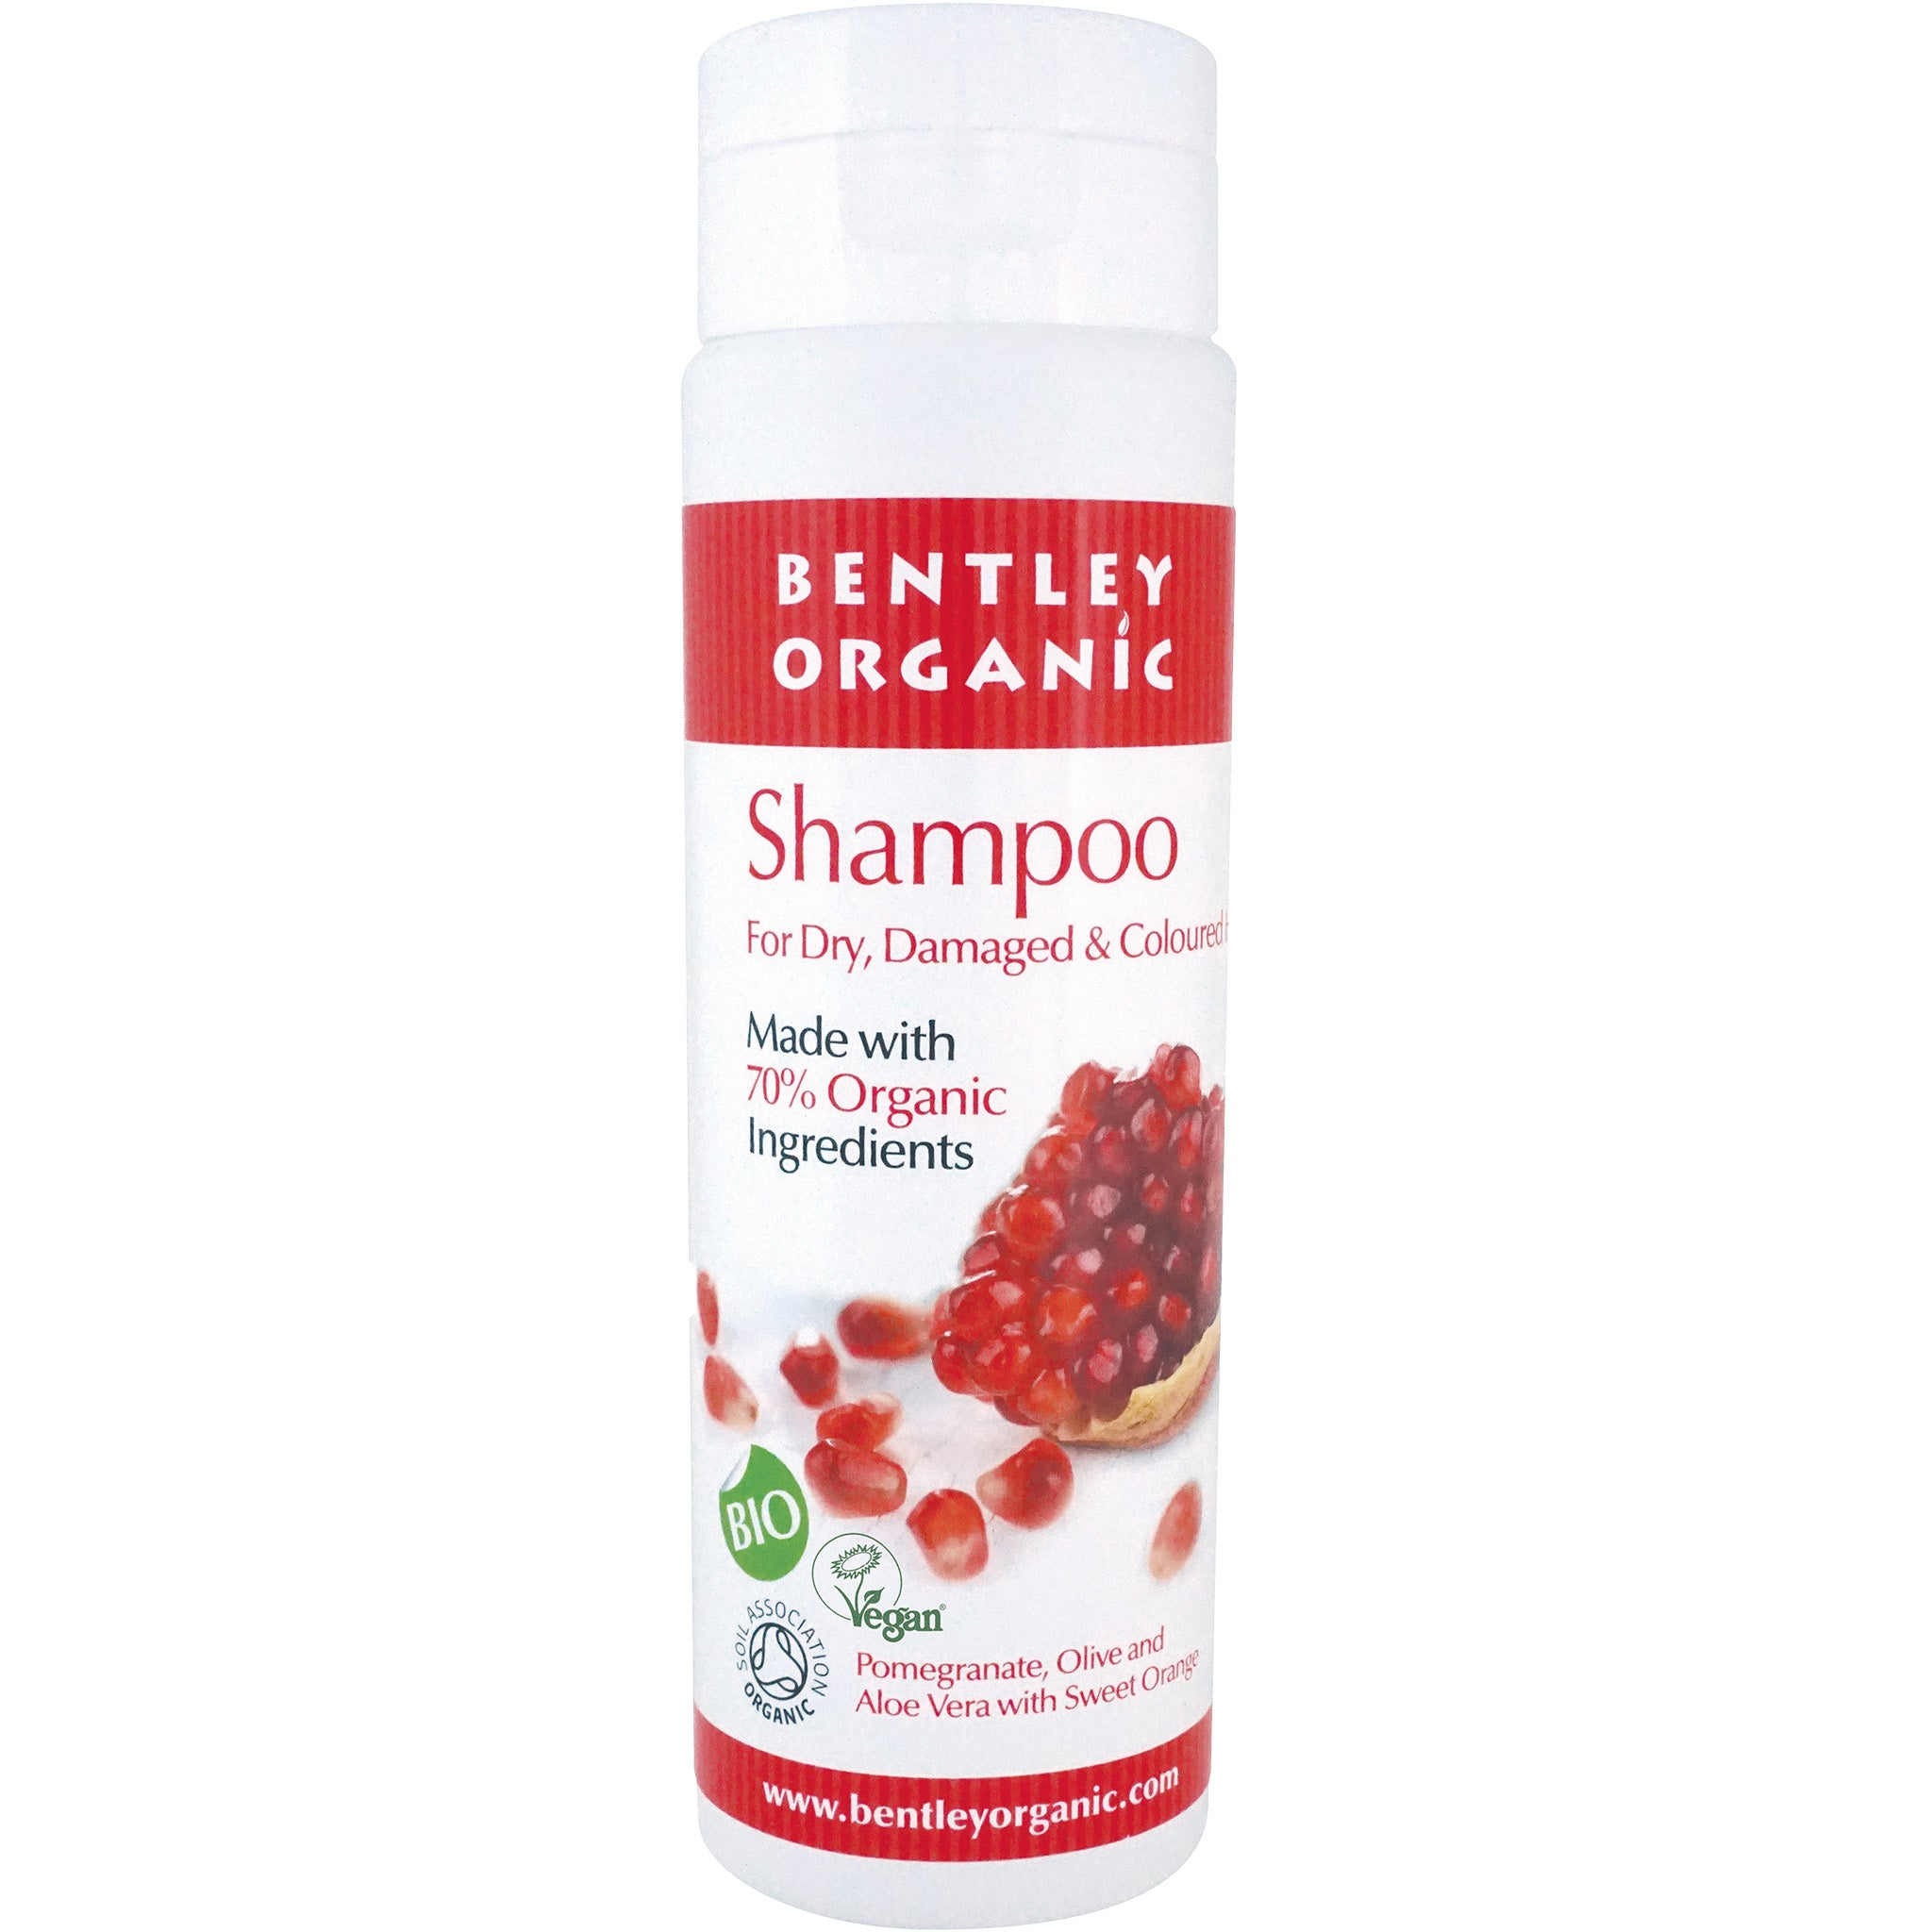 Shampoo with Pomegranate, Olive and Sweet Orange - For Dry and Damaged Hair